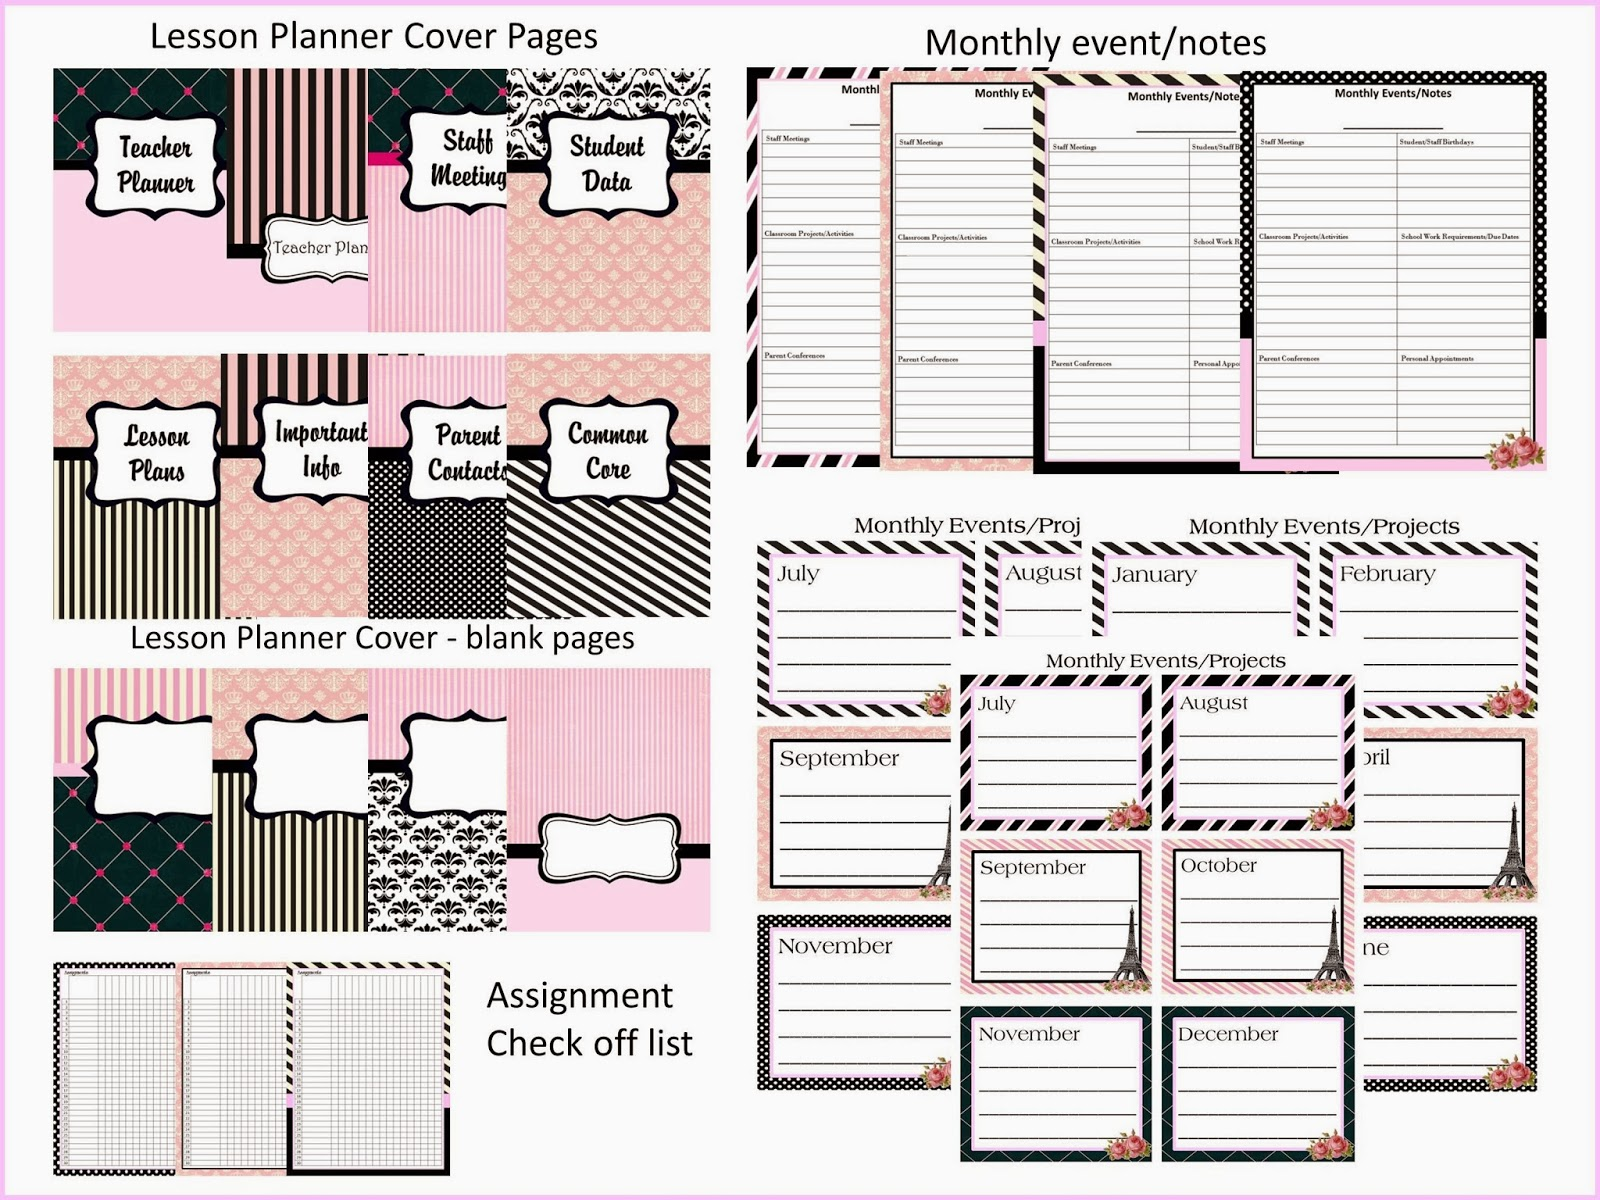 http://www.teacherspayteachers.com/Product/Teacher-Planner-2013-2014-Paris-Theme-pink-and-black-740895